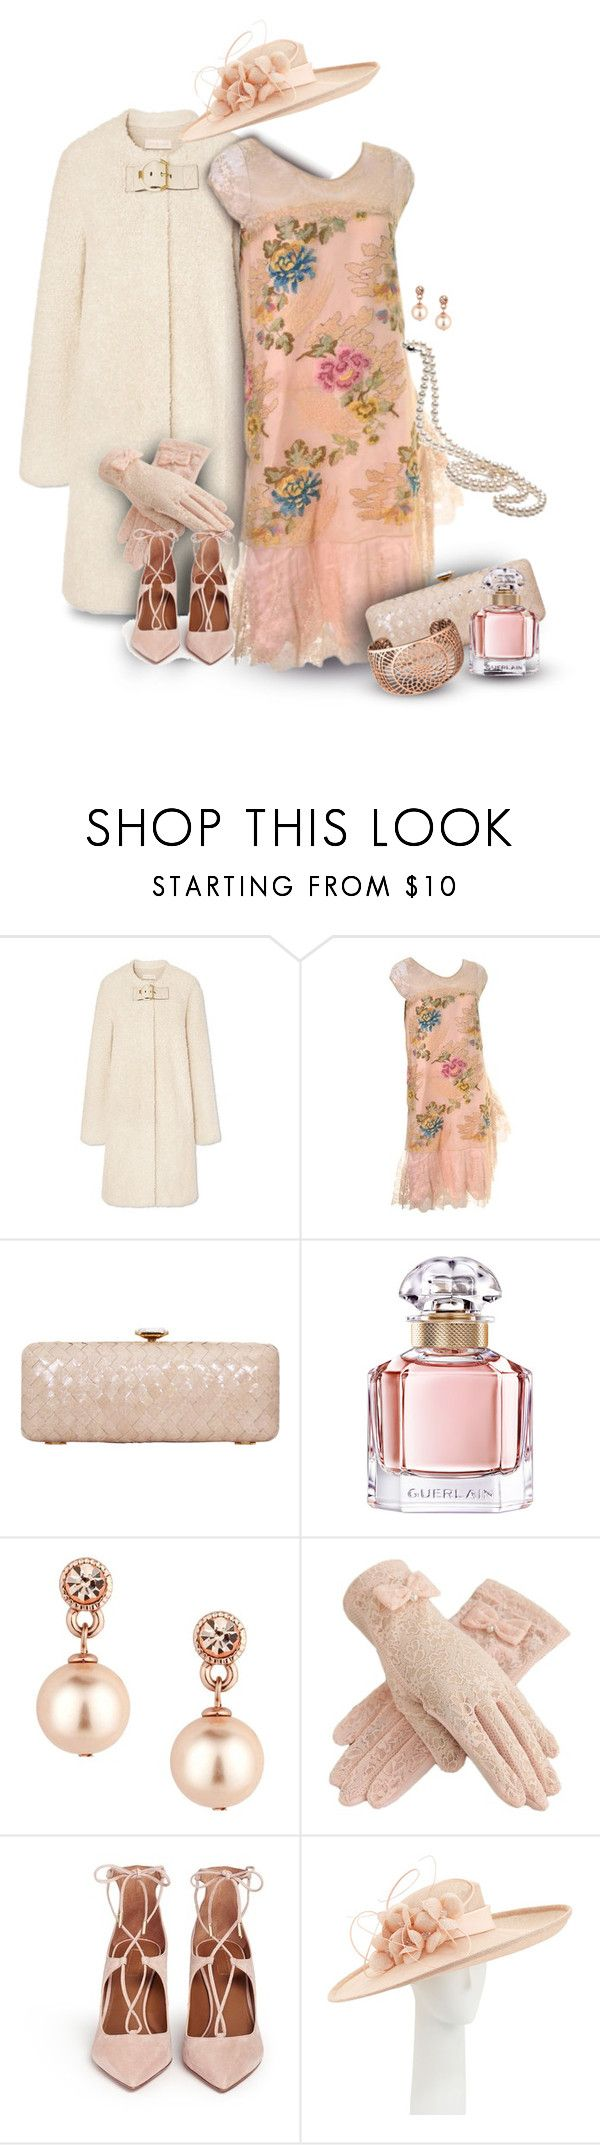 """""""Lace Dress & Hat for a Spring Wedding"""" by franceseattle ❤ liked on Polyvore featuring Tory Burch, Trilogy, Guerlain, Jon Richard, Aquazzura and Rachel Trevor-Morgan"""